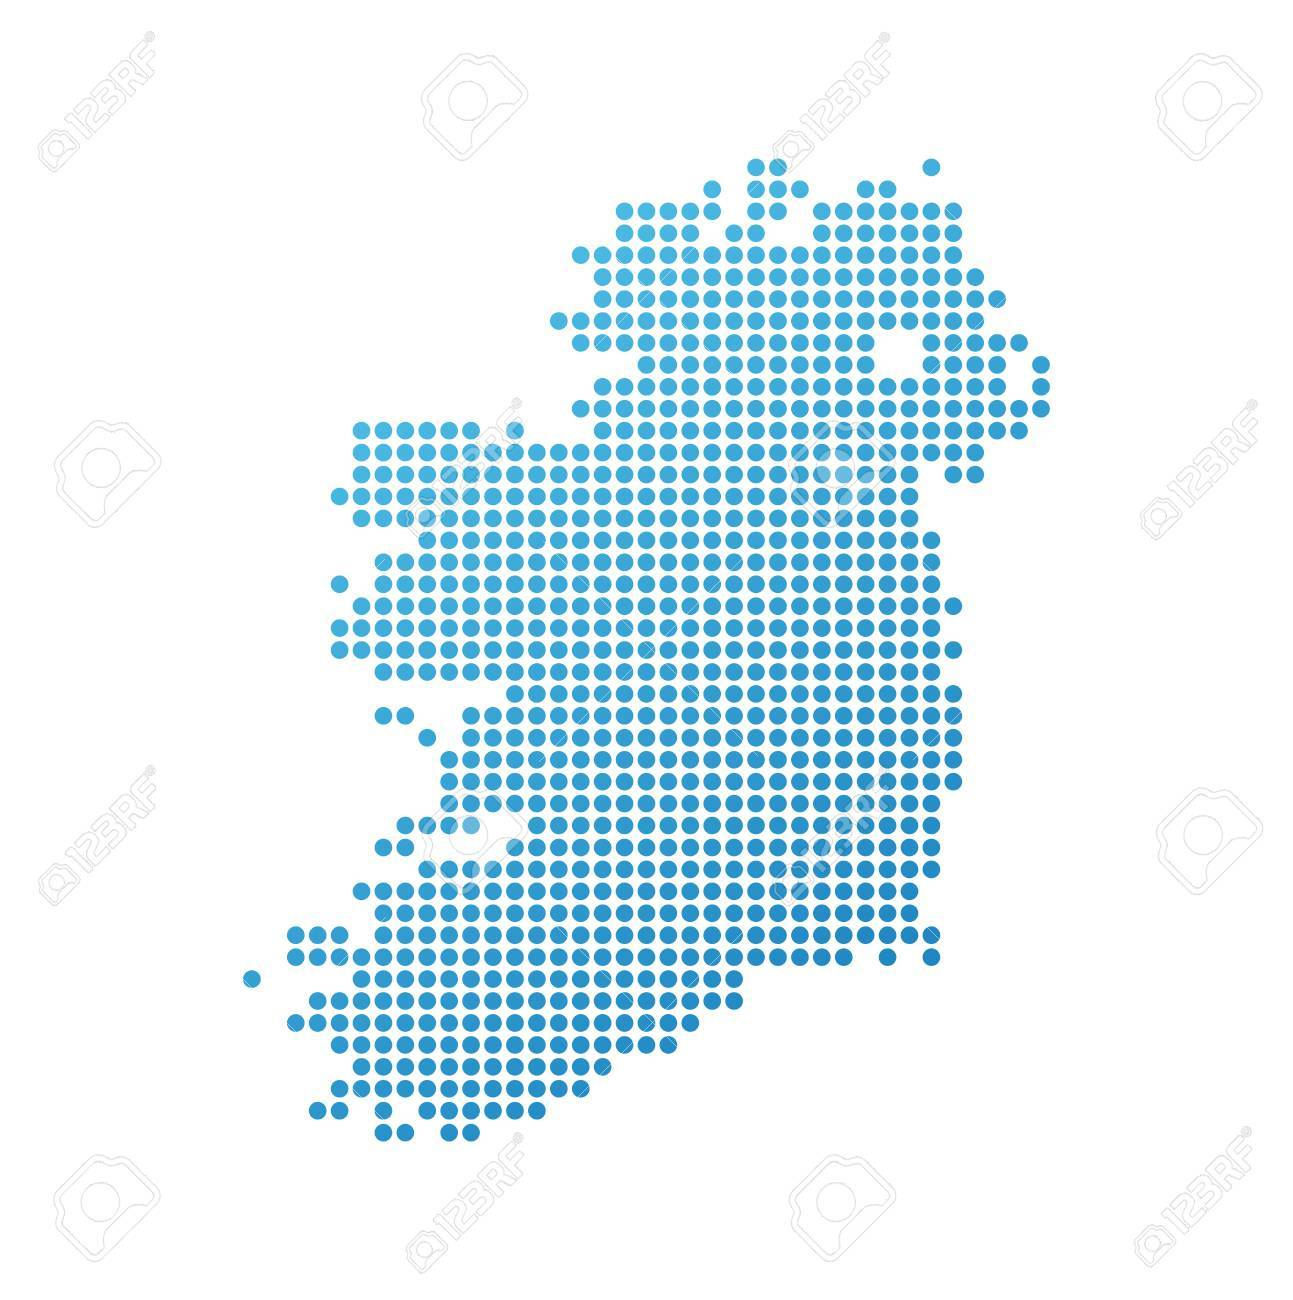 Detailed Map Of Ireland Vector.Map Of Ireland Vector Icon In Blue Modern Style Royalty Free